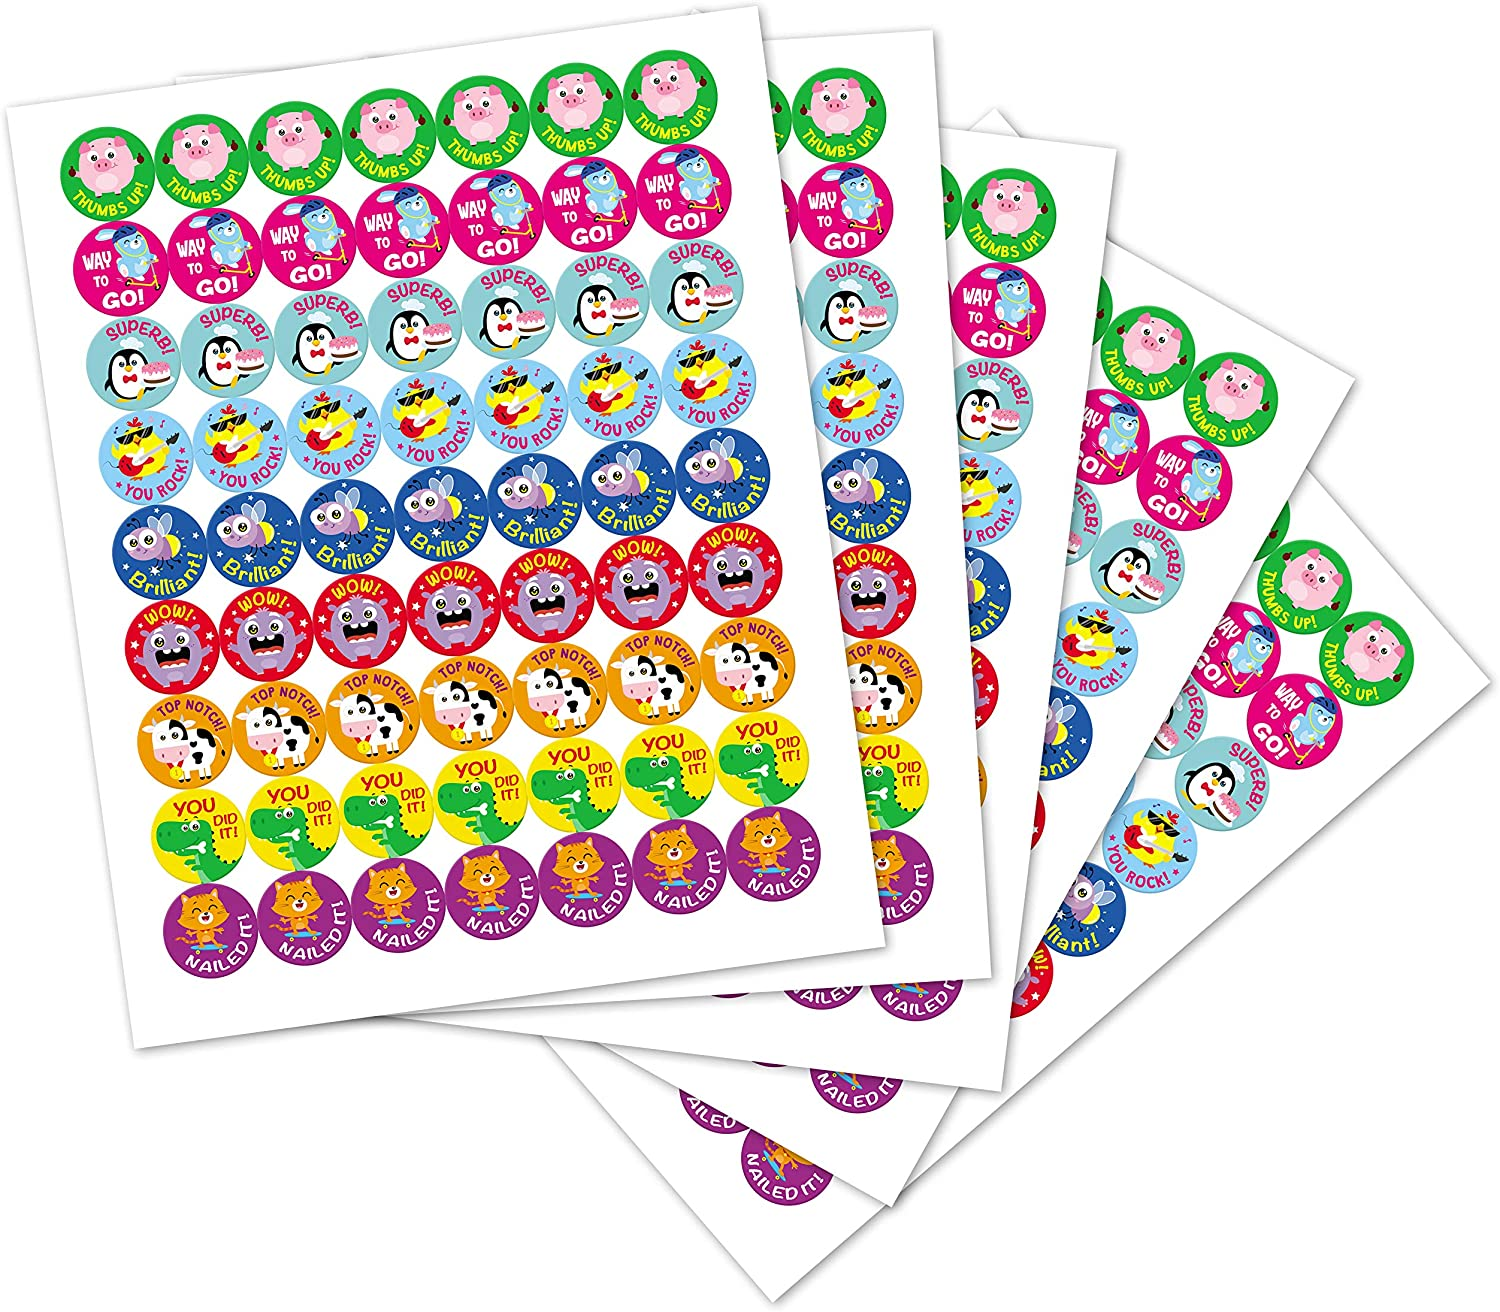 Sweetzer & Orange Reward Stickers for Teachers. 1008 Stickers for Kids in 9 Designs. 1 Inch School Stickers on Sheets. Teacher Supplies for Classroom, Potty Training Stickers, Motivational Stickers : Office Products